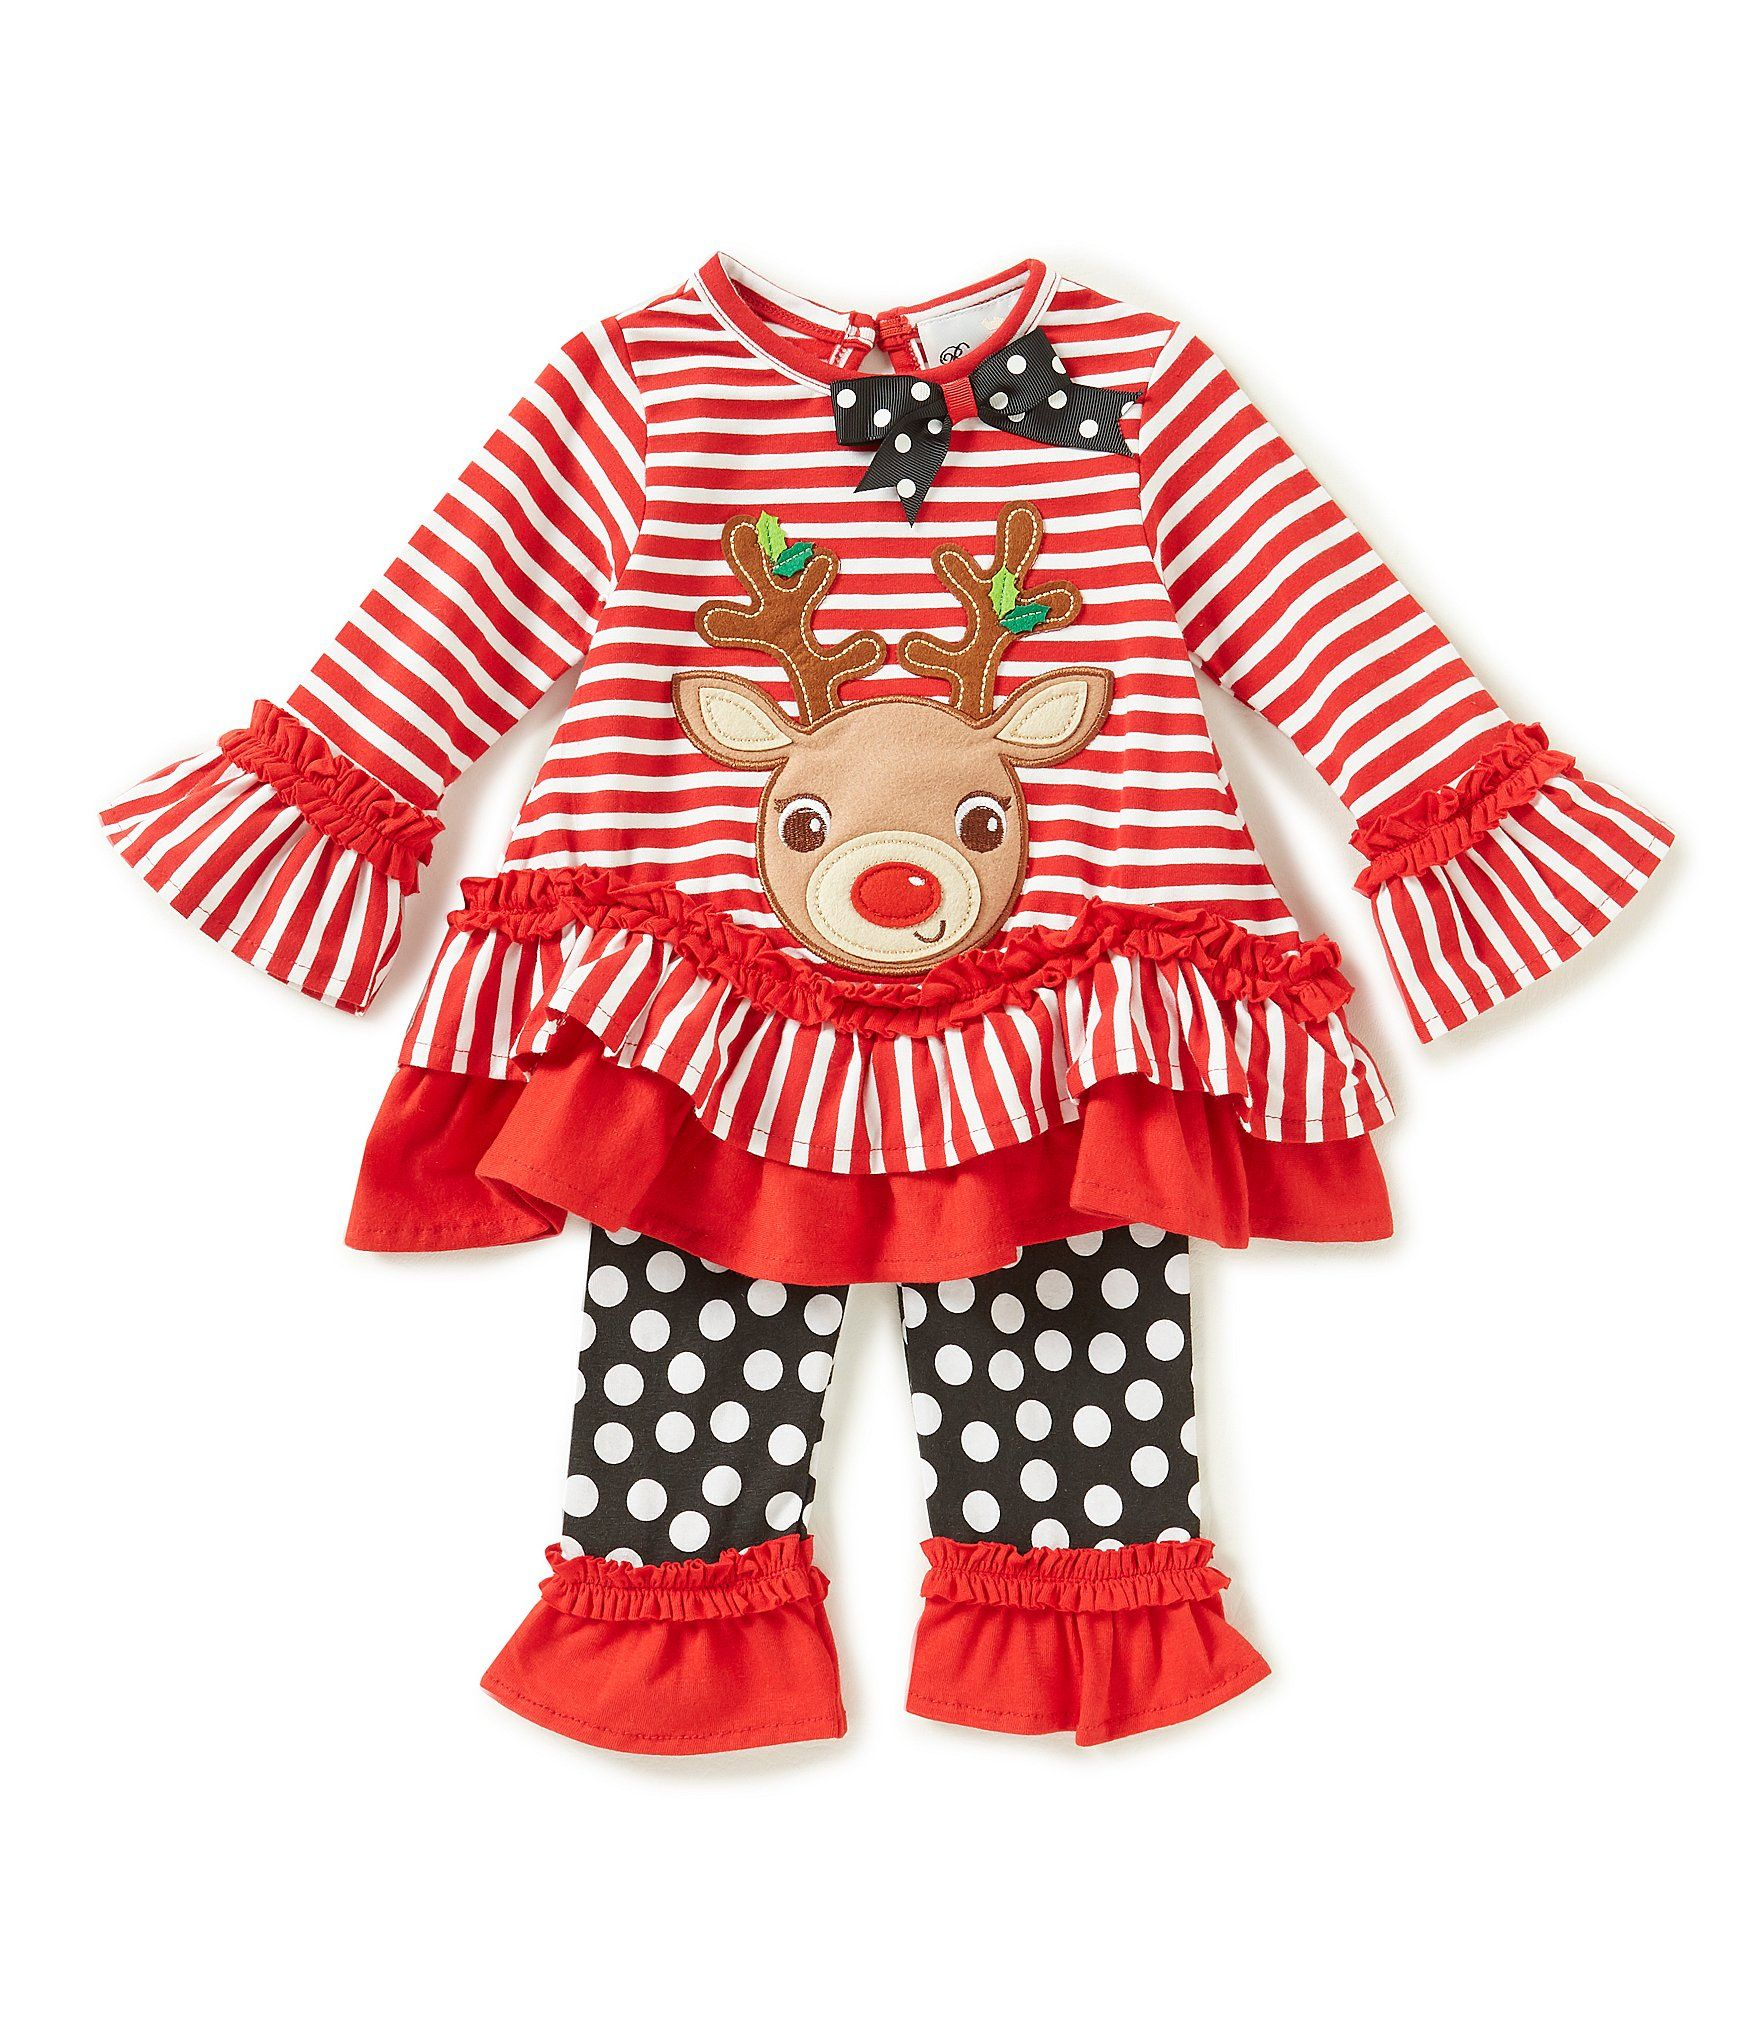 41859f5ae Rare Editions Baby Girls 324 Months Christmas Reindeer Striped Top and  Dotted Leggings Set #Dillards